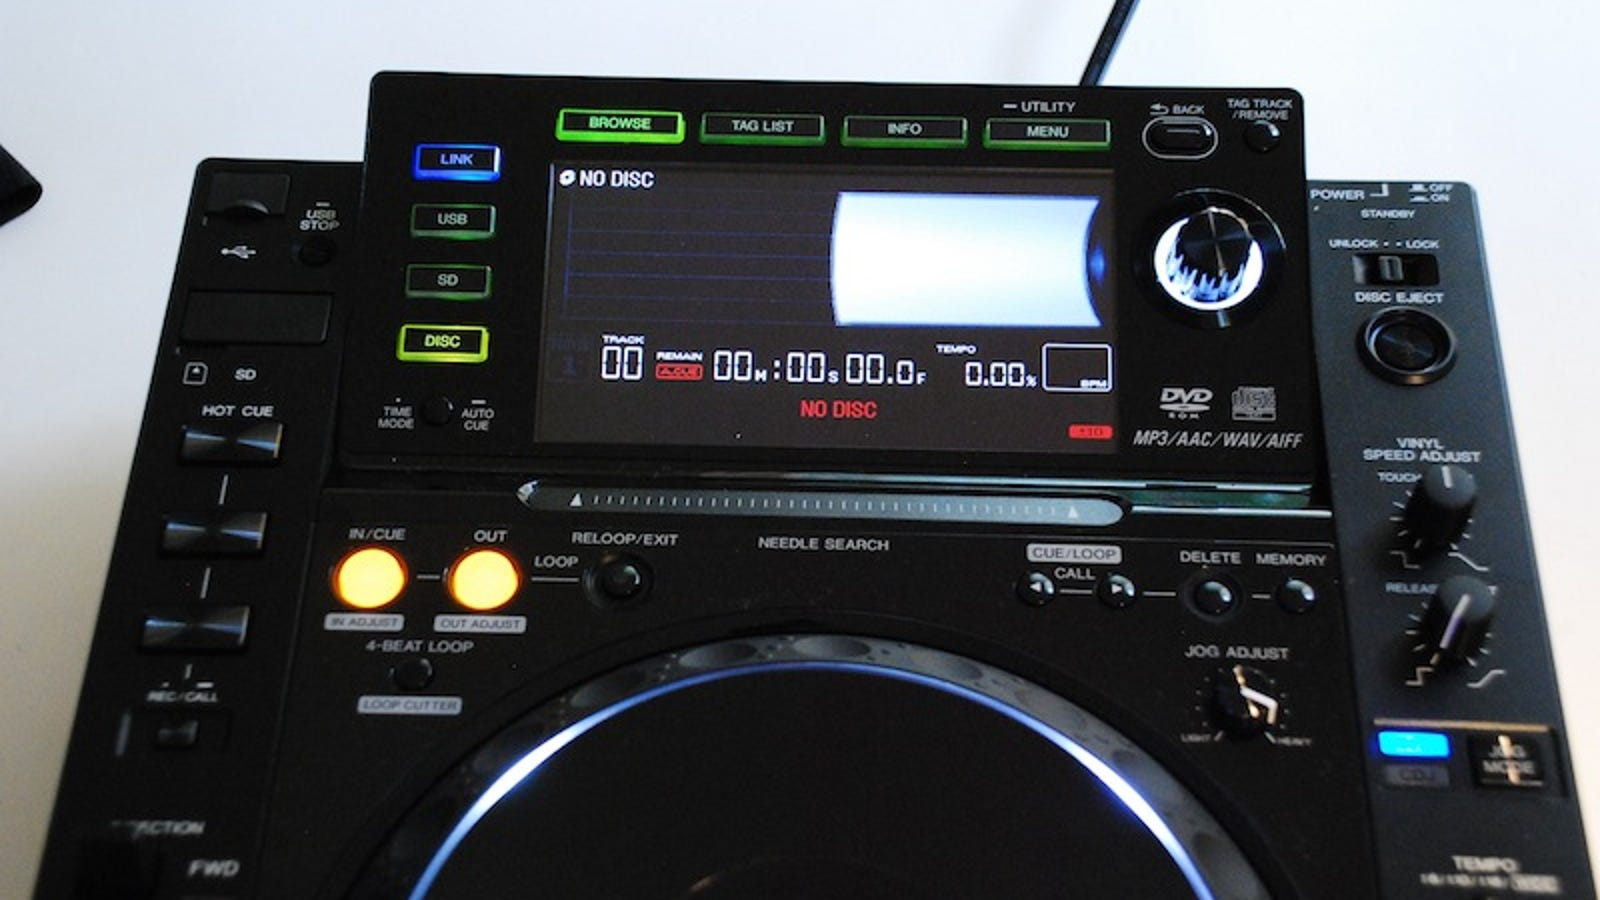 Pioneer CDJ-2000 Lets You Mix With the Help of a Big